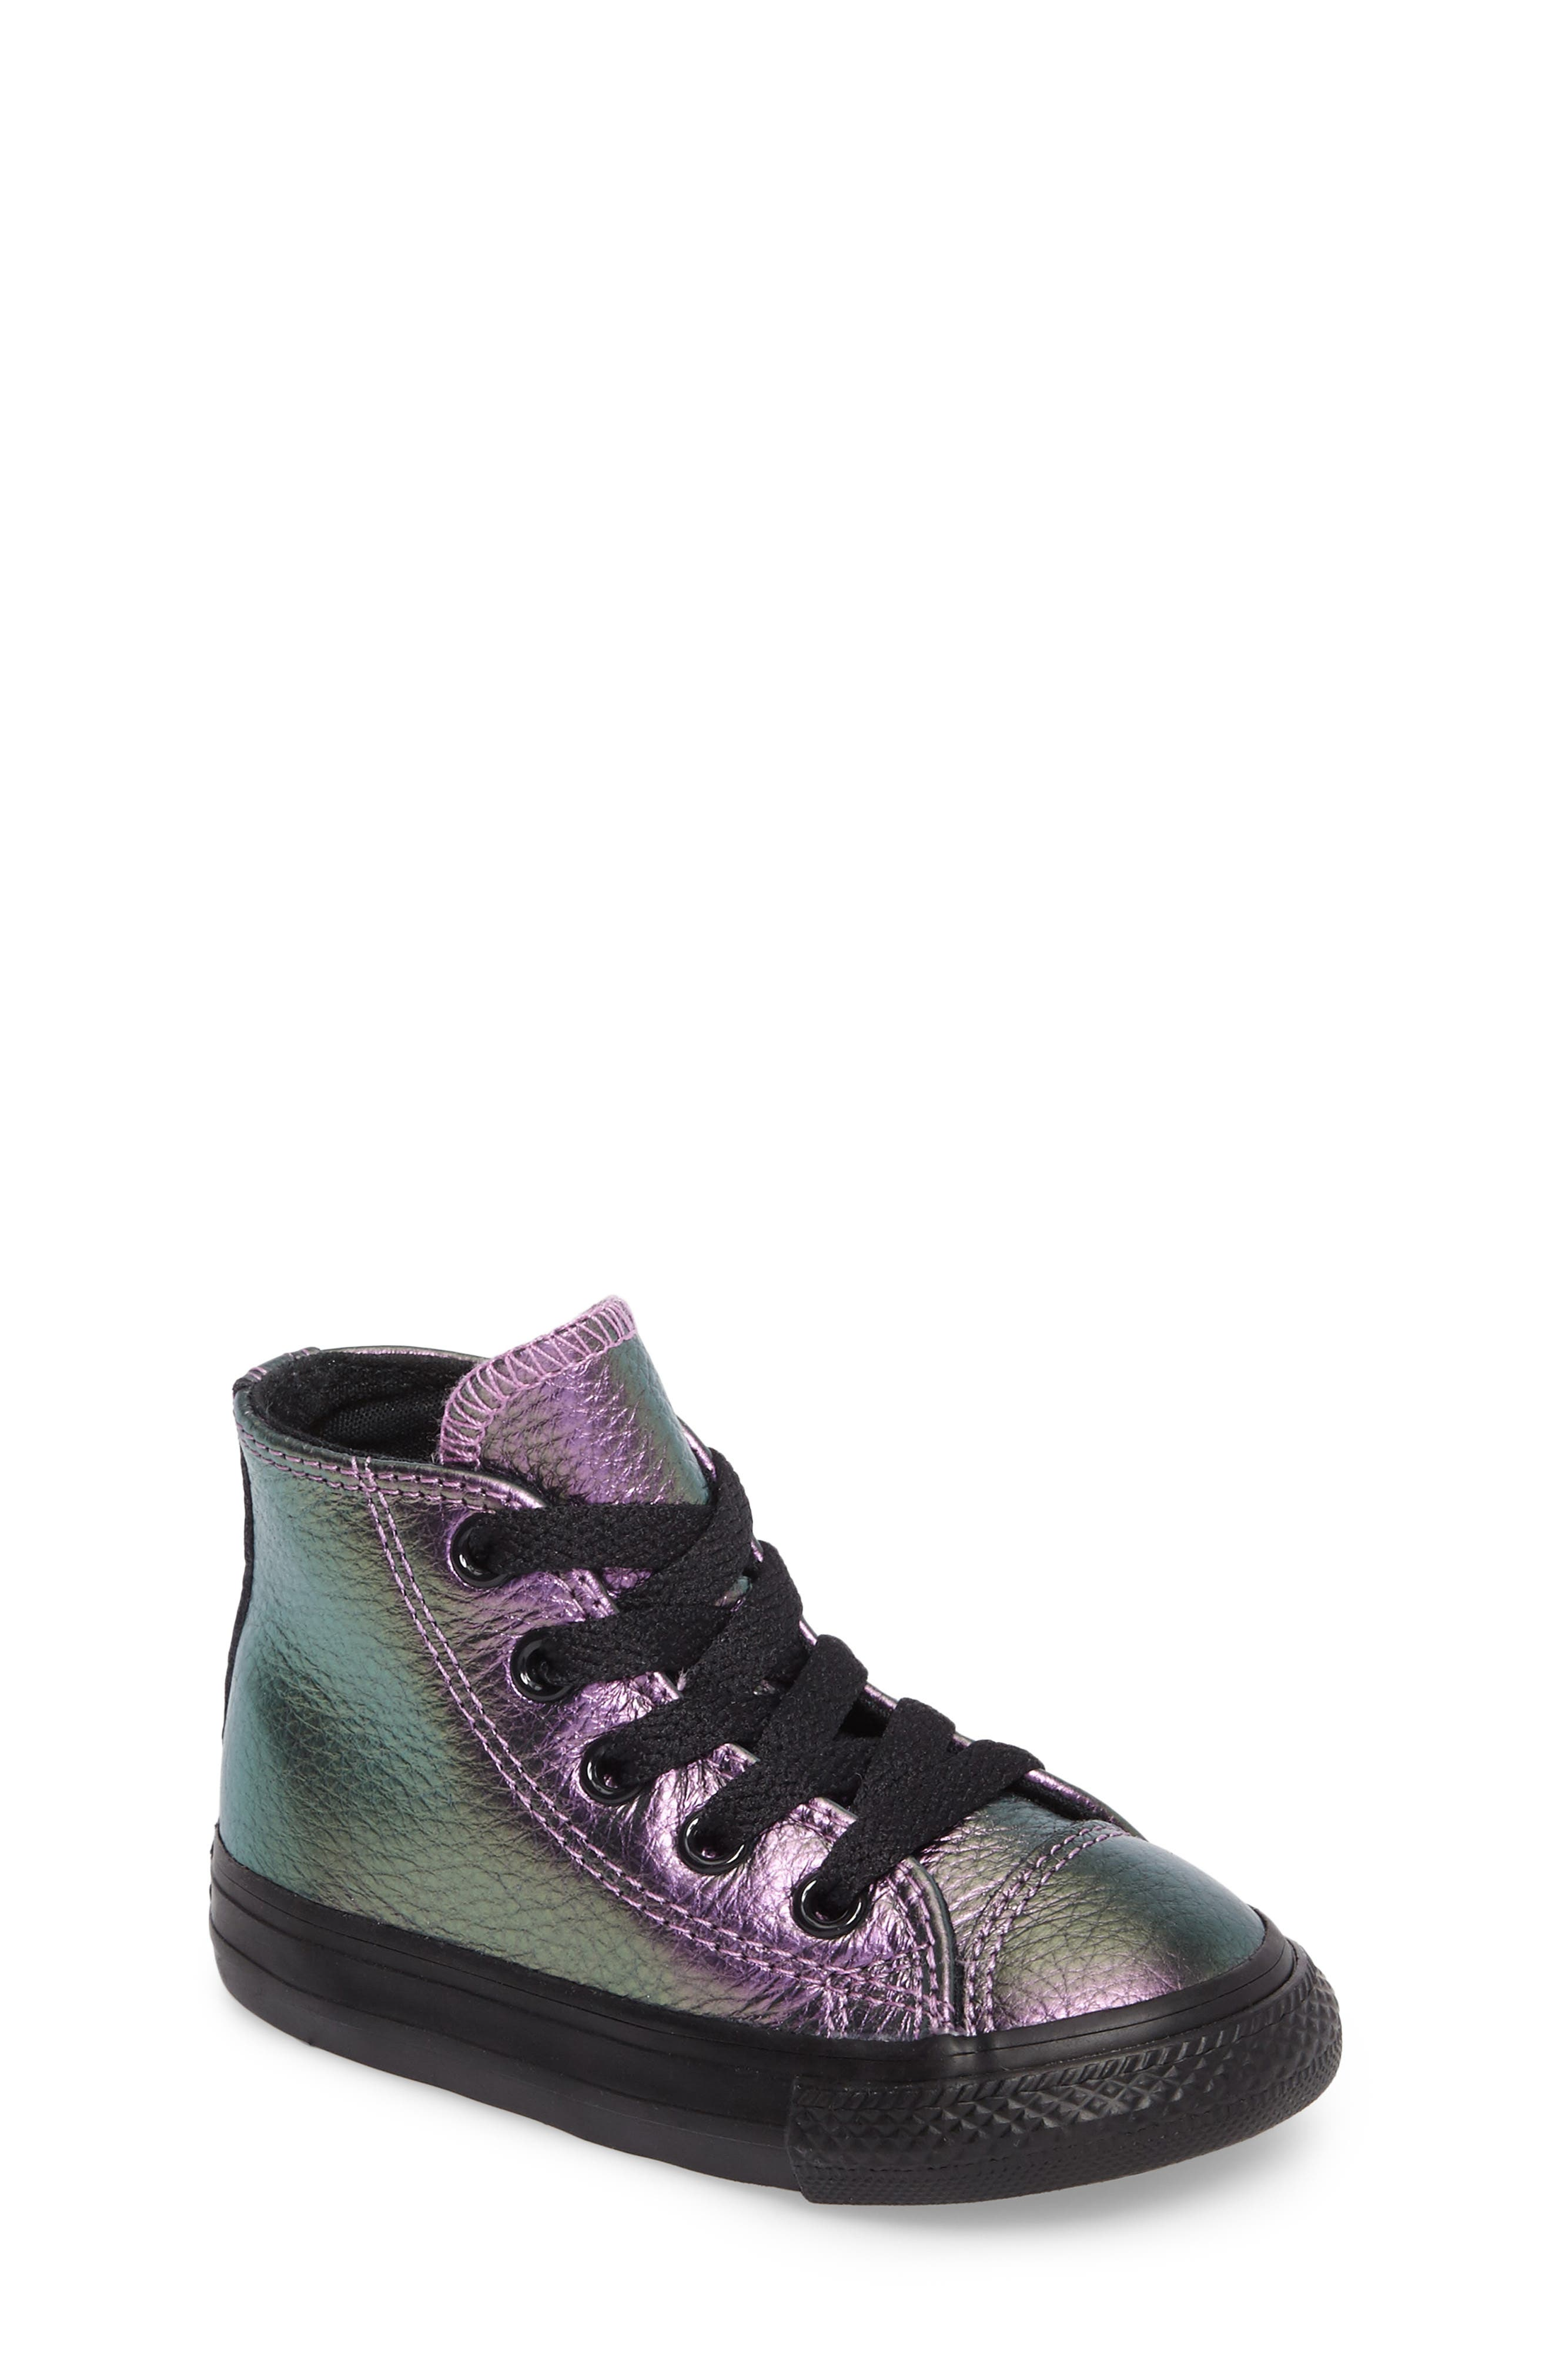 Chuck Taylor<sup>®</sup> All Star<sup>®</sup> Iridescent Leather High Top Sneaker,                             Main thumbnail 2, color,